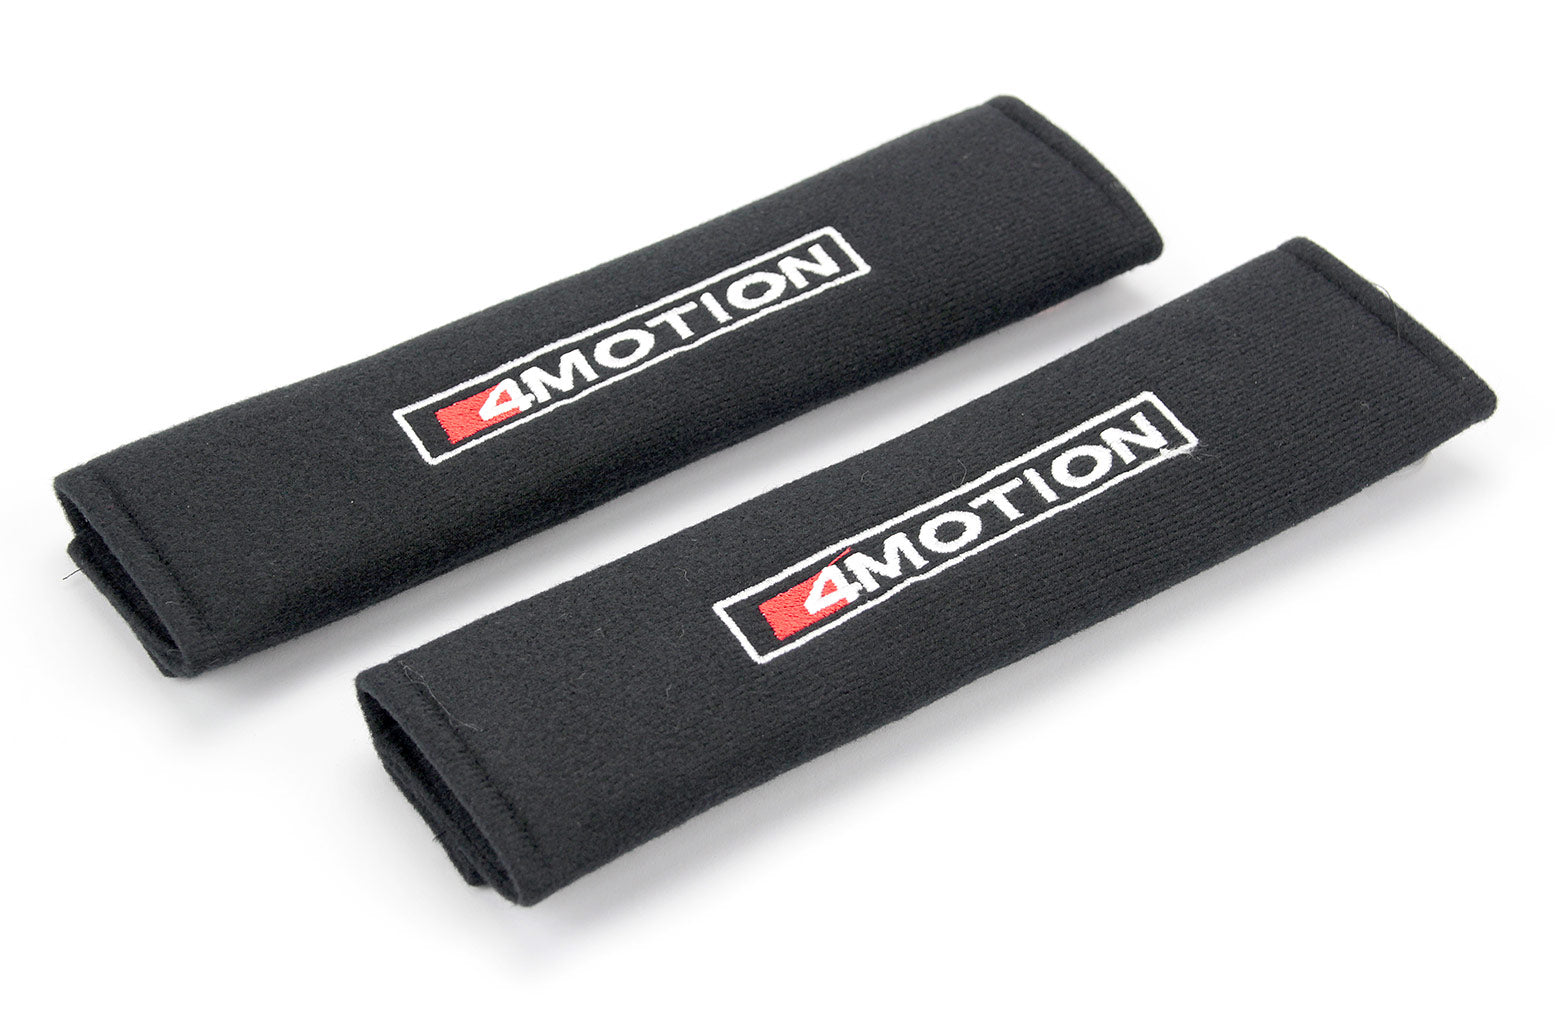 4Motion logo embroidered on padded seat belt covers.